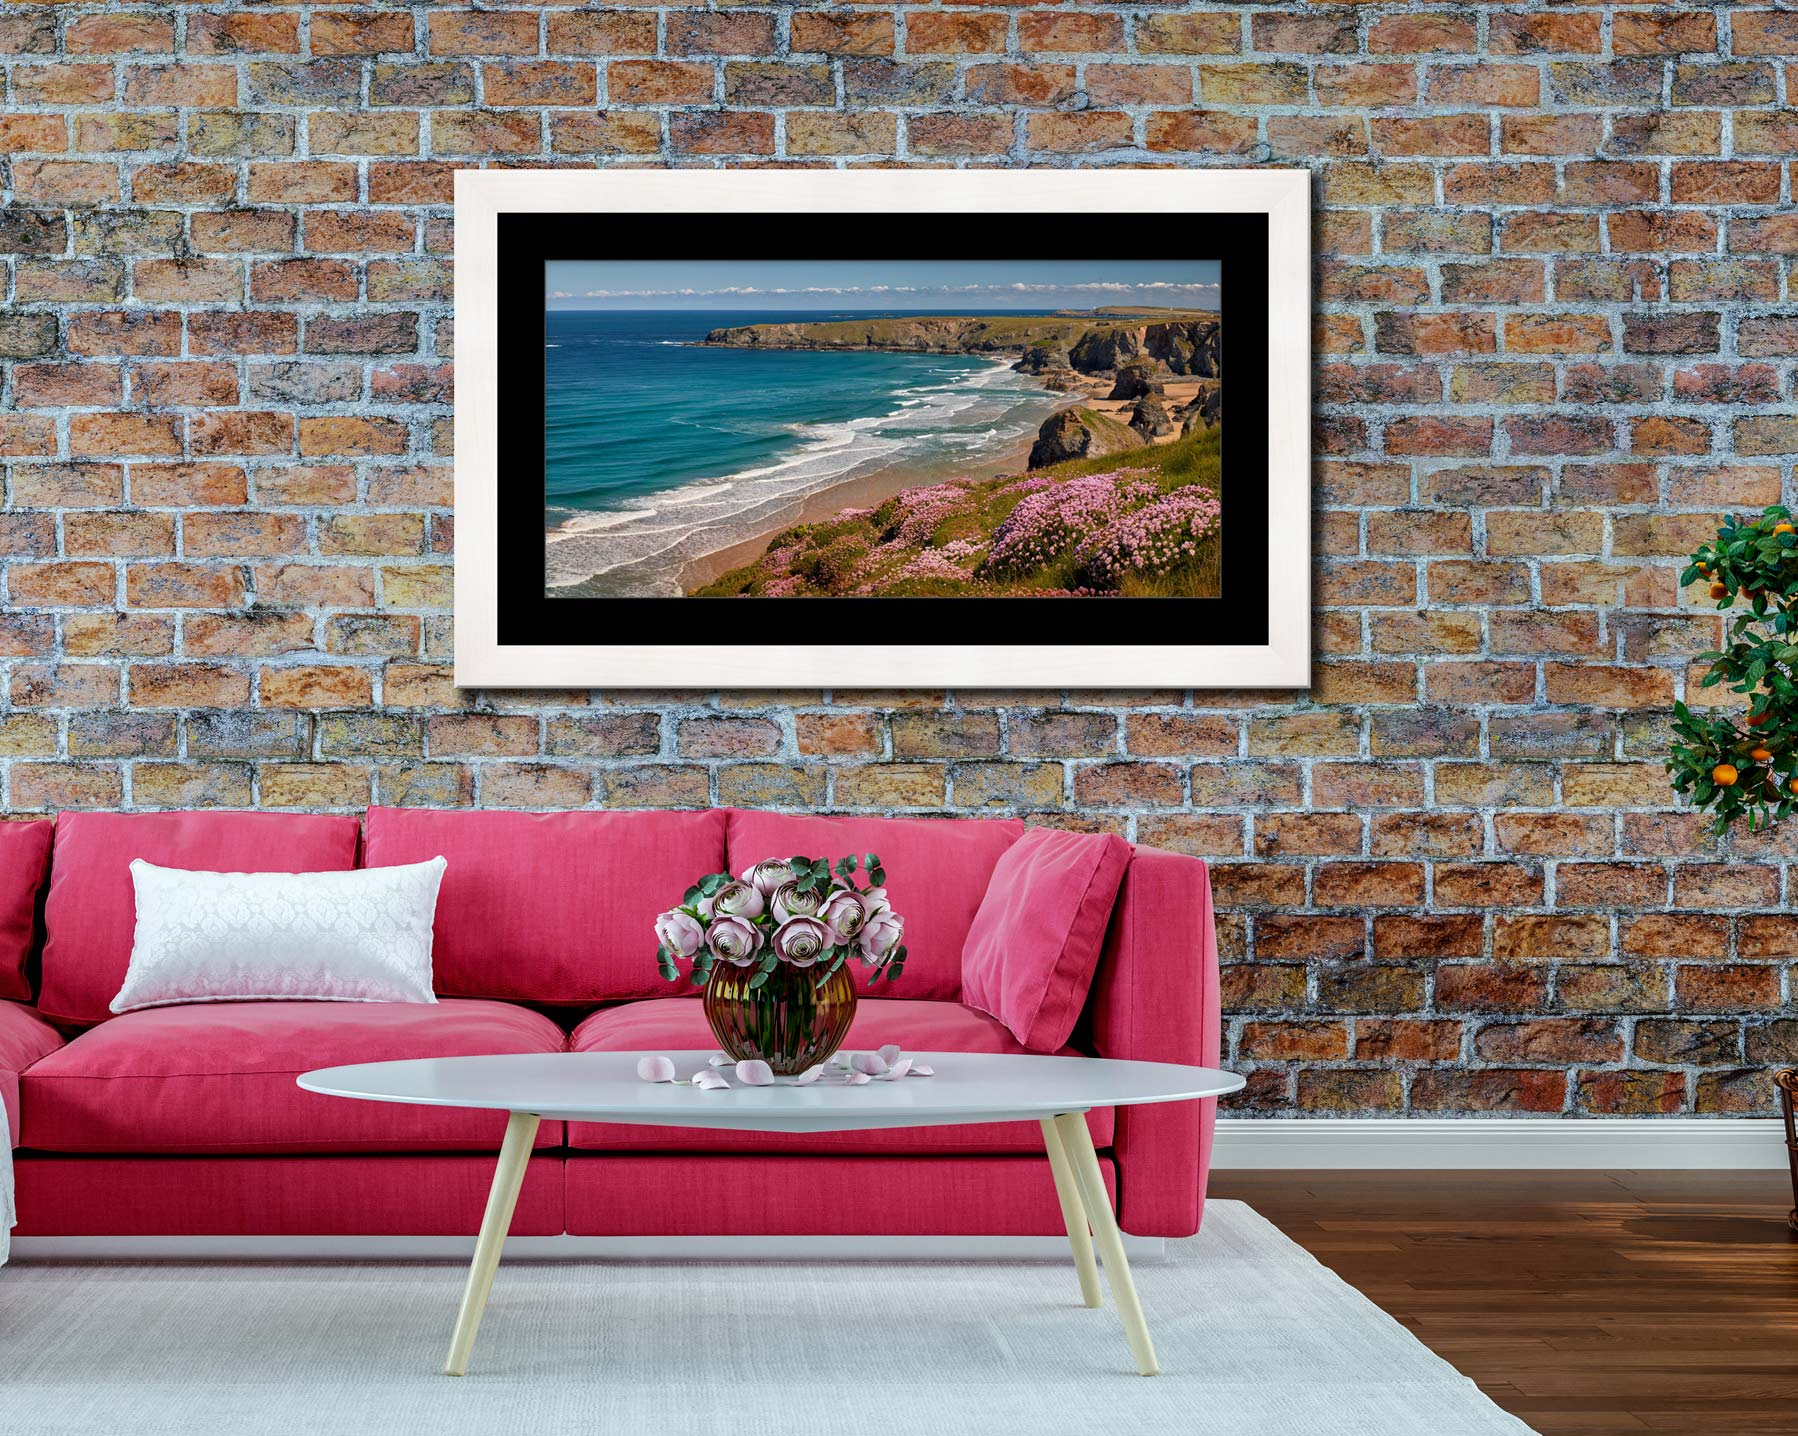 Spring Wildflowers Bedruthan Steps - Framed Print with Mount on Wall